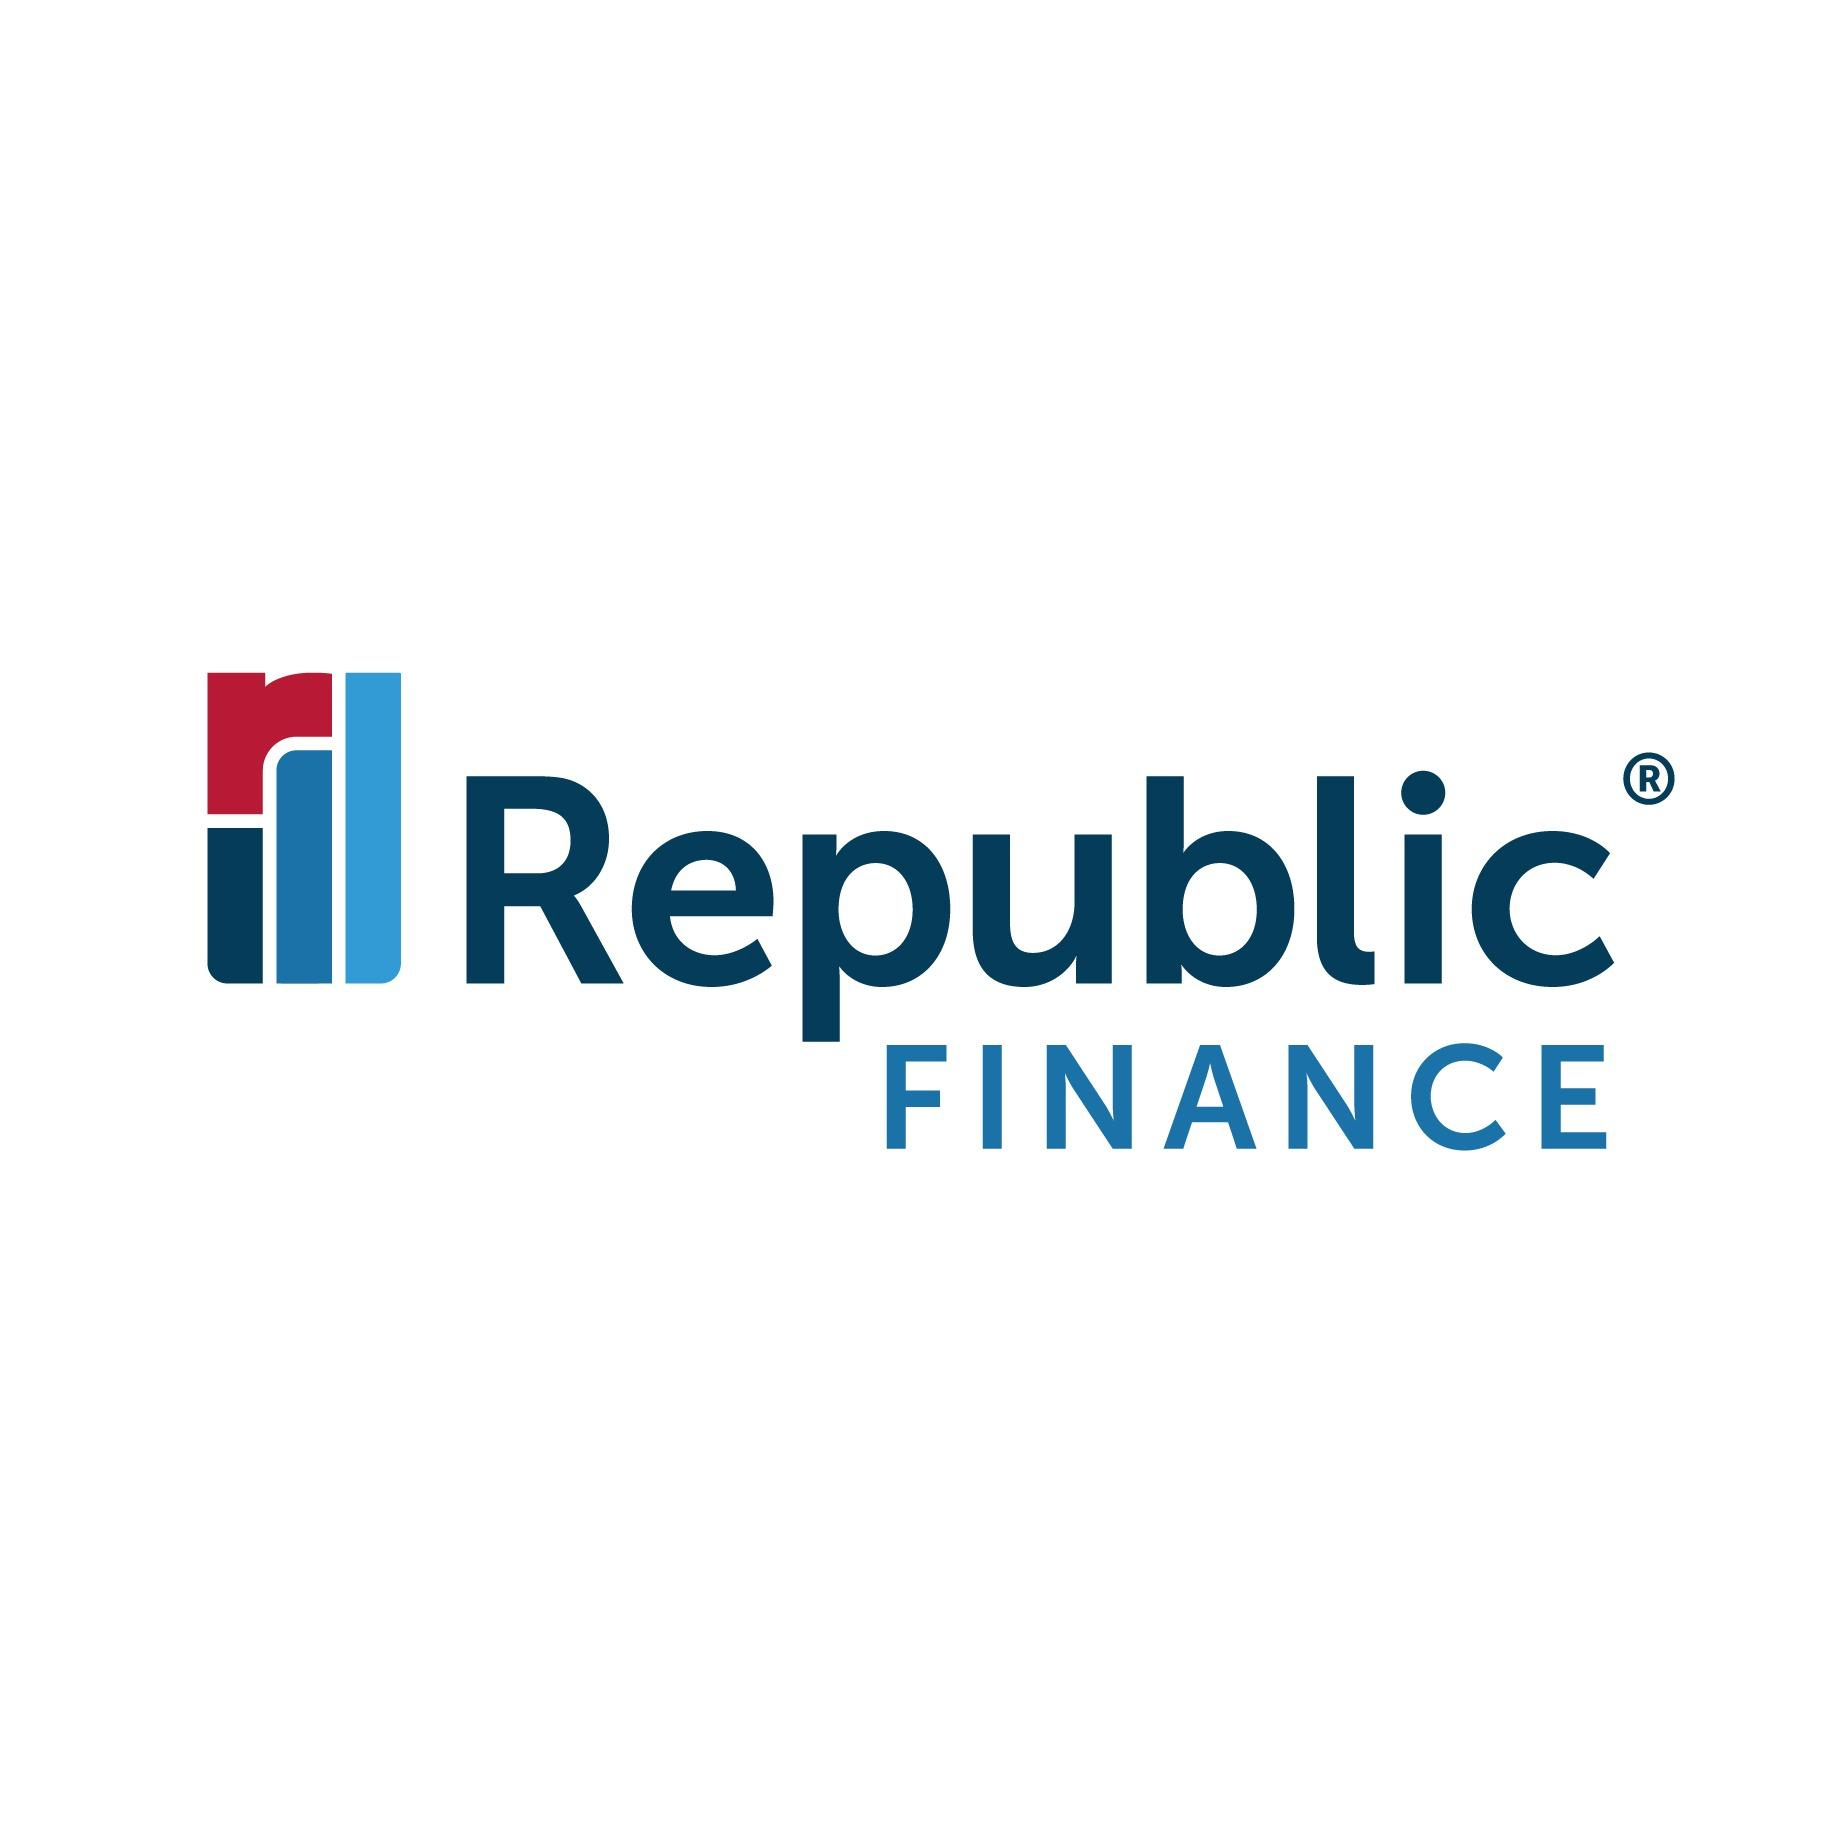 Republic Finance - Newnan, GA 30265 - (770)251-7222 | ShowMeLocal.com